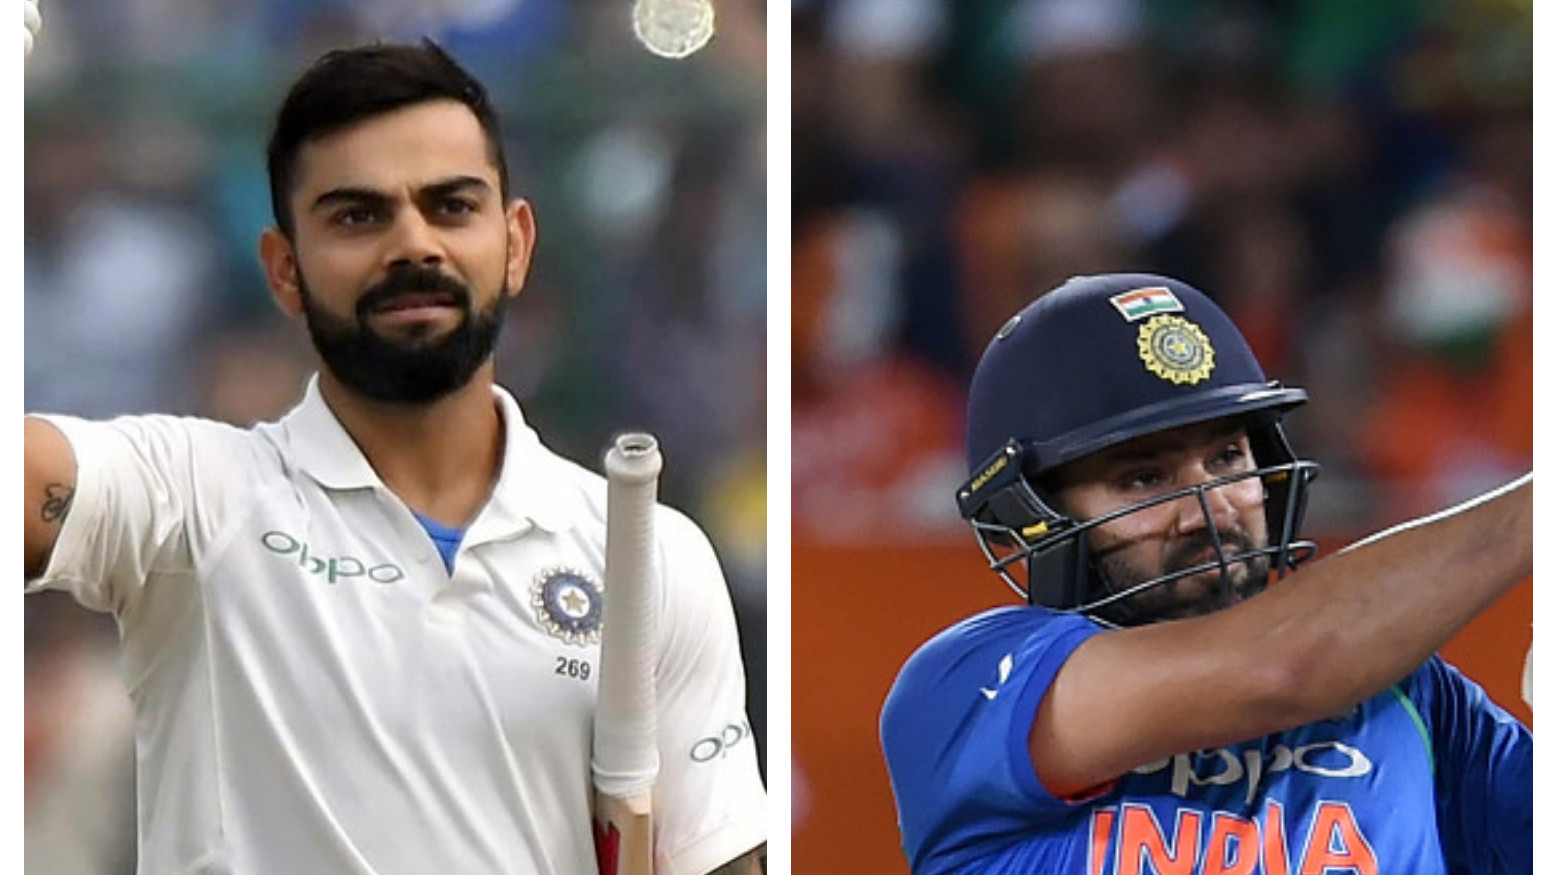 Two different Indian teams to play matches simultaneously on tour to Australia, as per reports